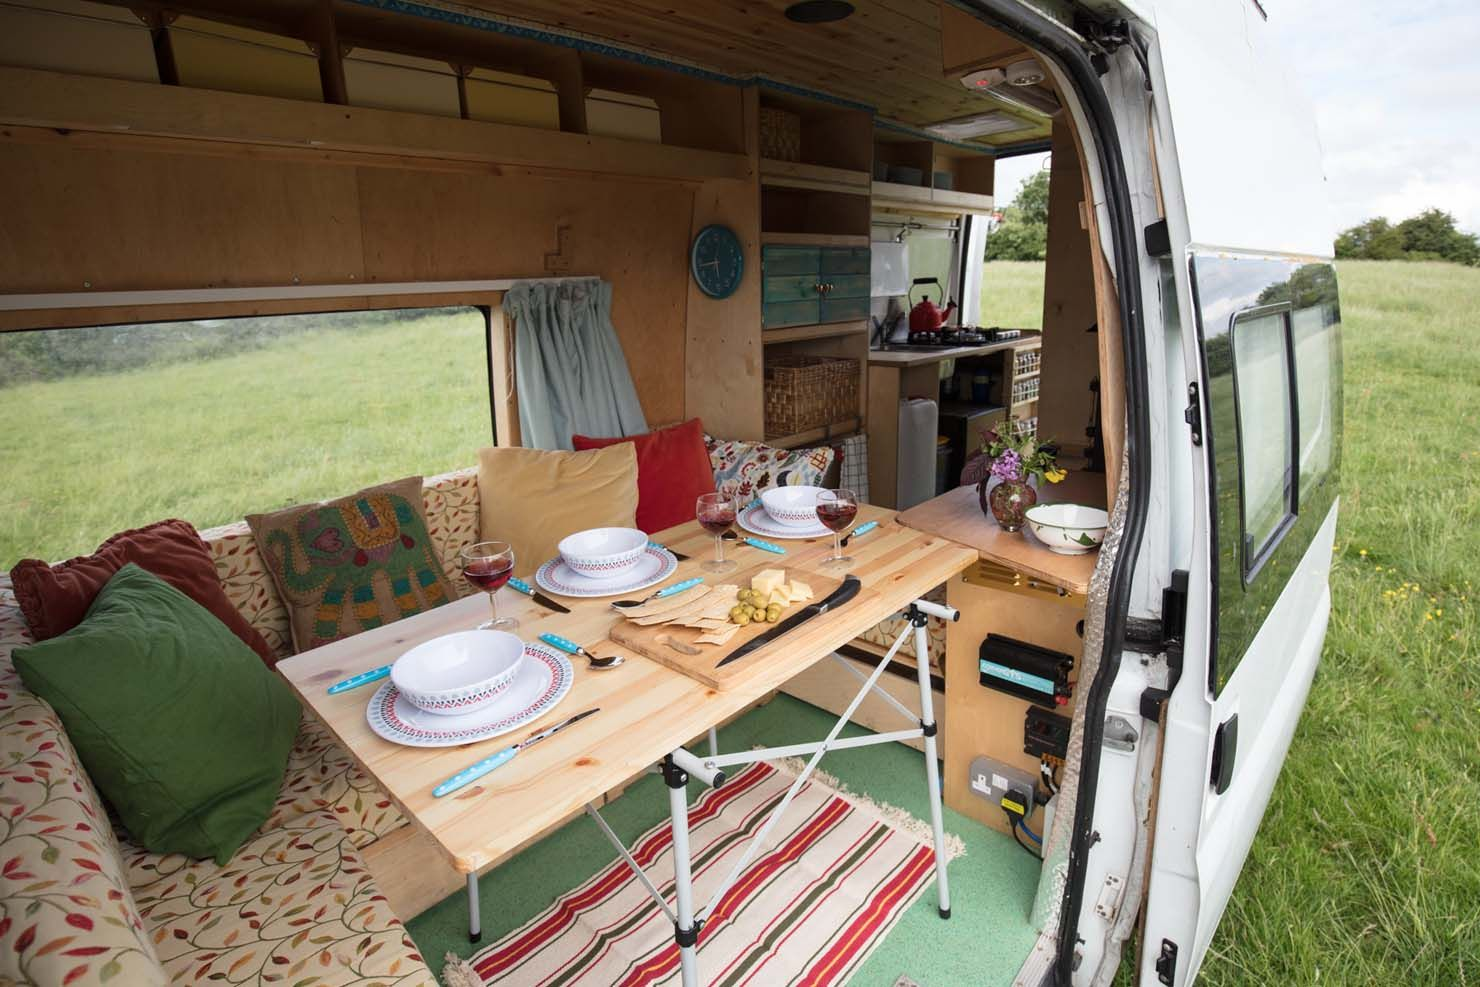 Clarence ⋆ Quirky Campers  Wohnen, Weiß, Wohnmobil